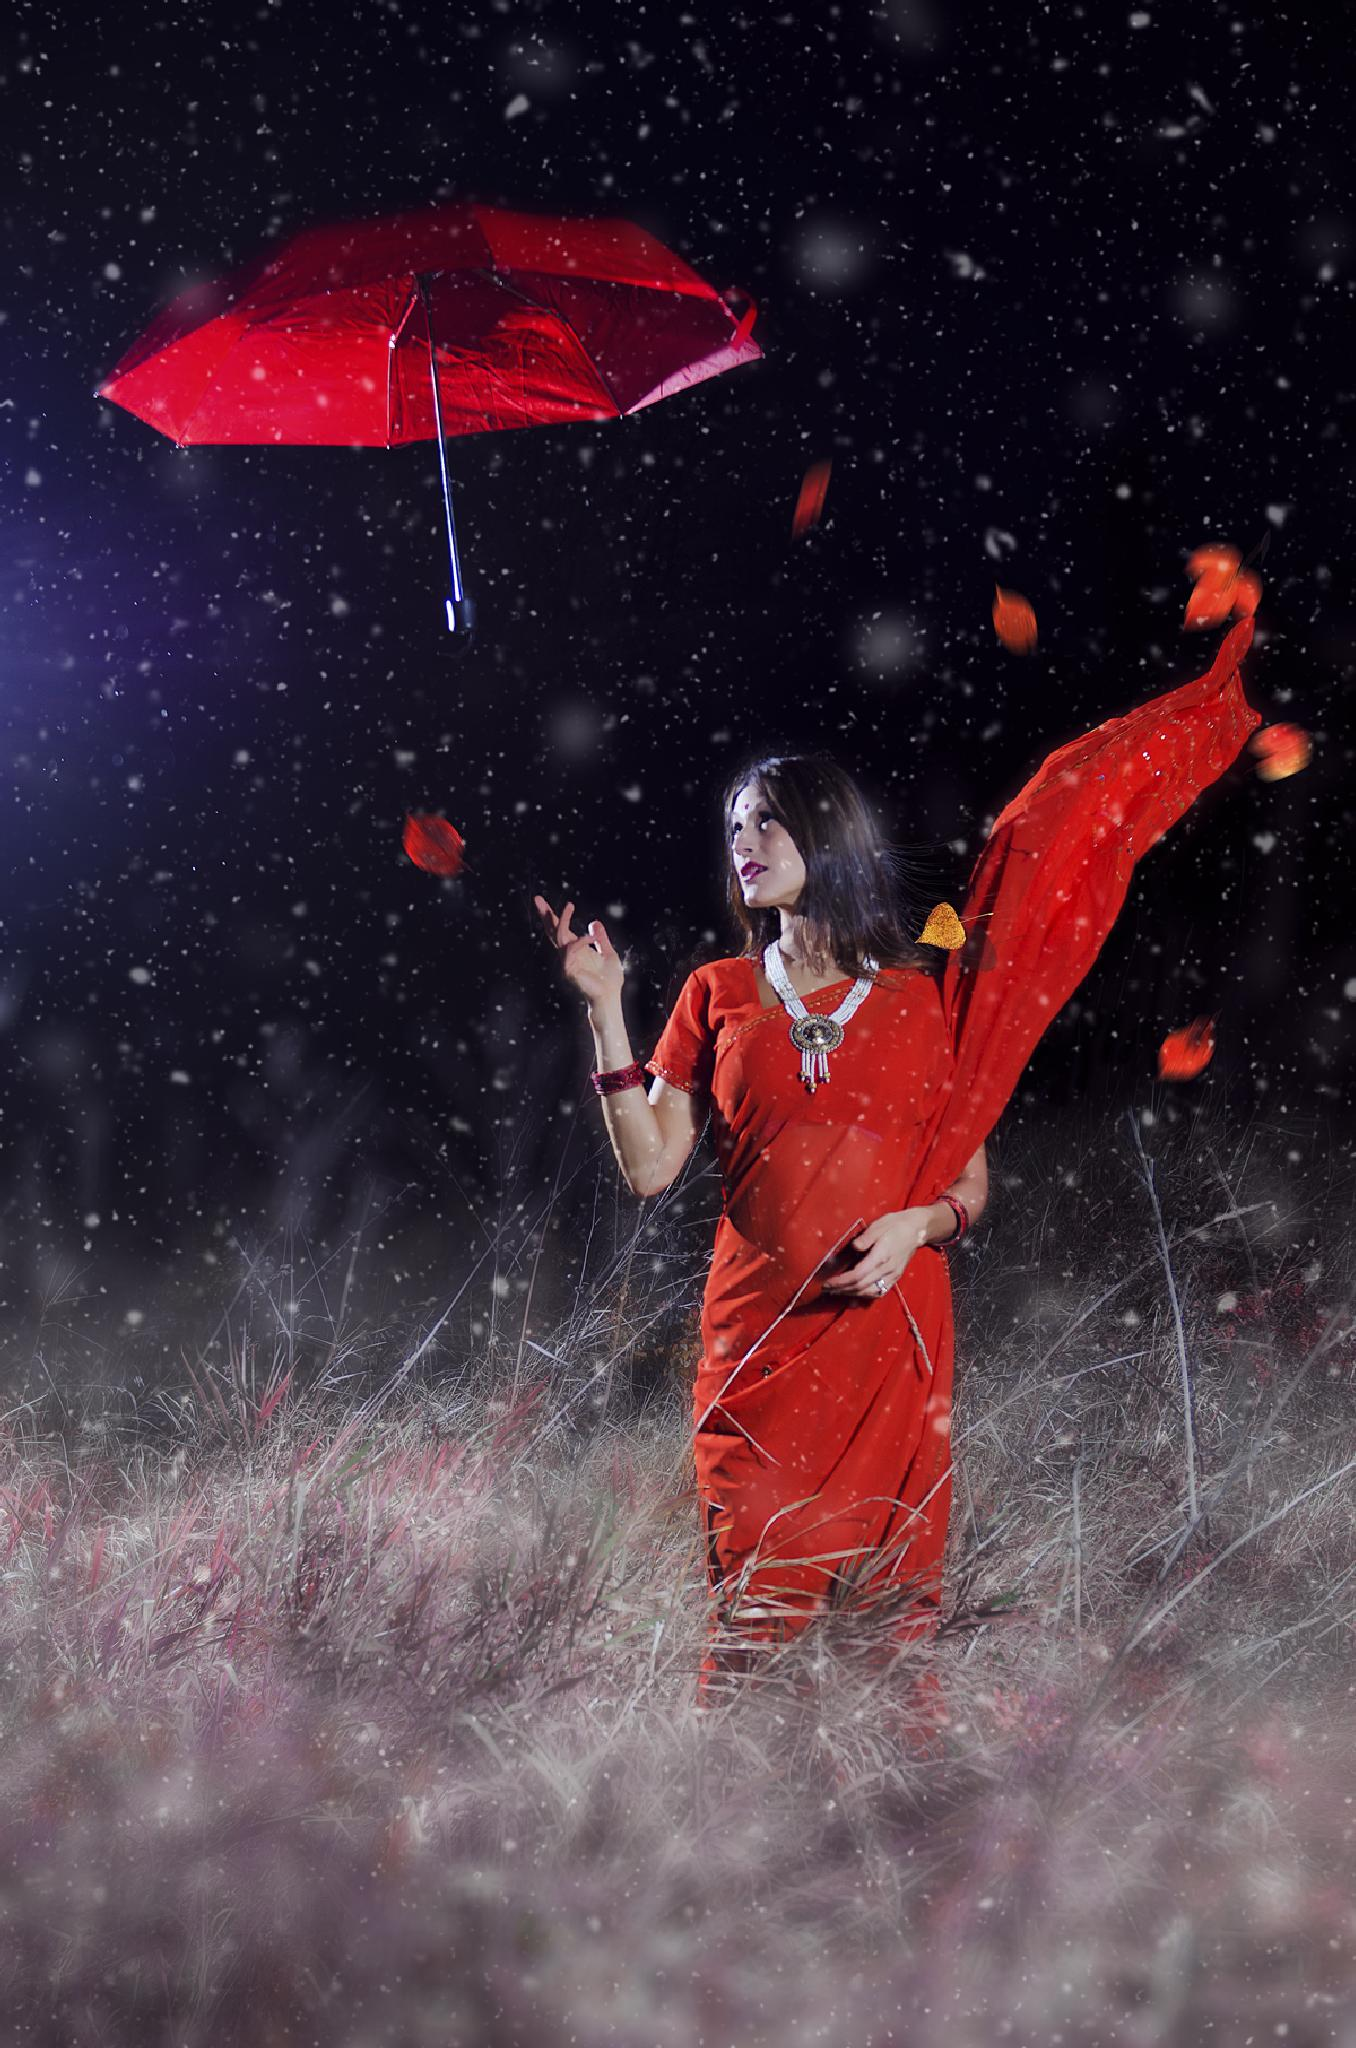 Music of Autumn: The Red Umbrella by G Robbani